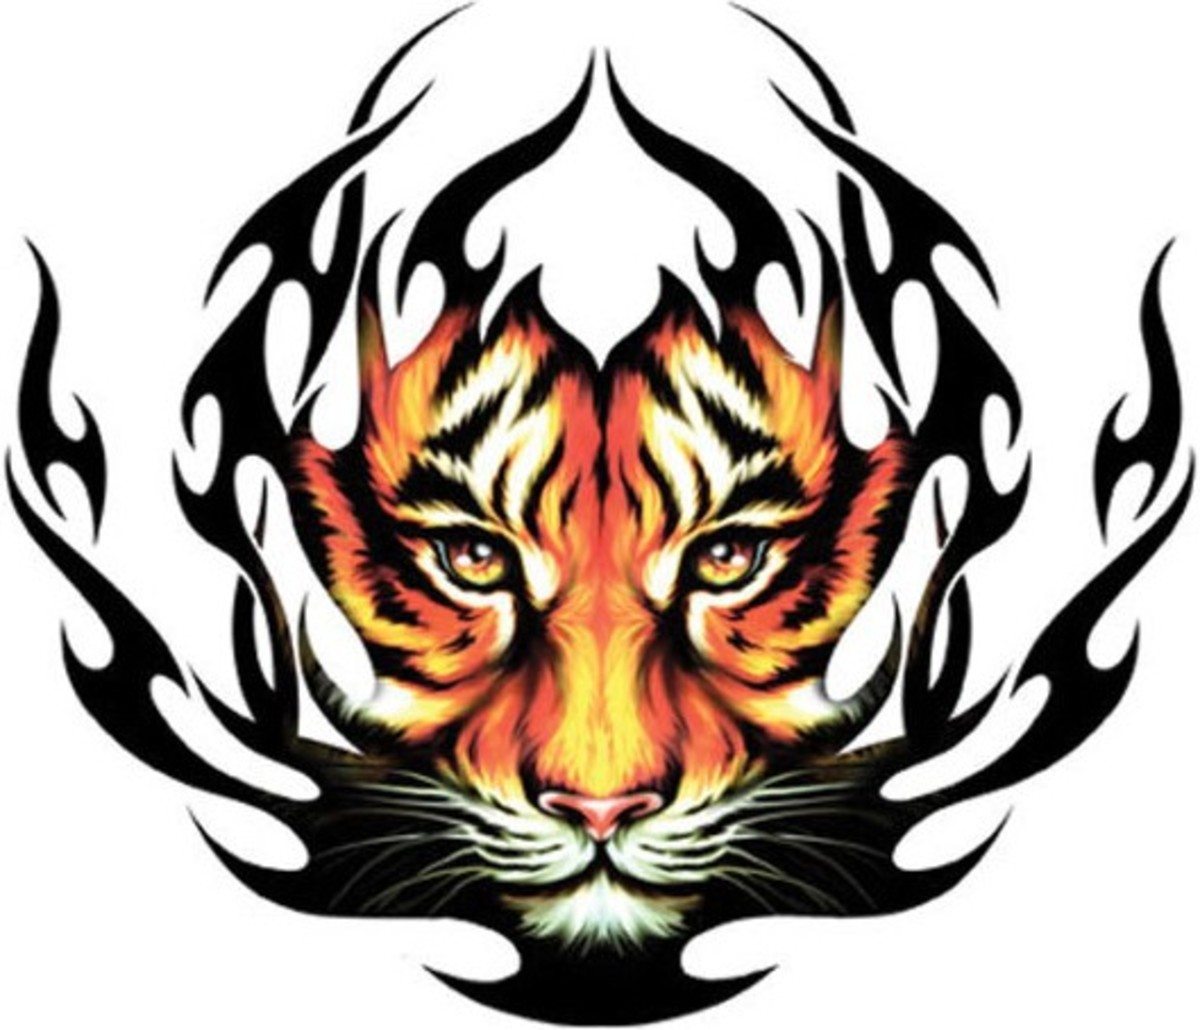 Tiger in Tribal Fire - Tribal Tattoo for Men or Women